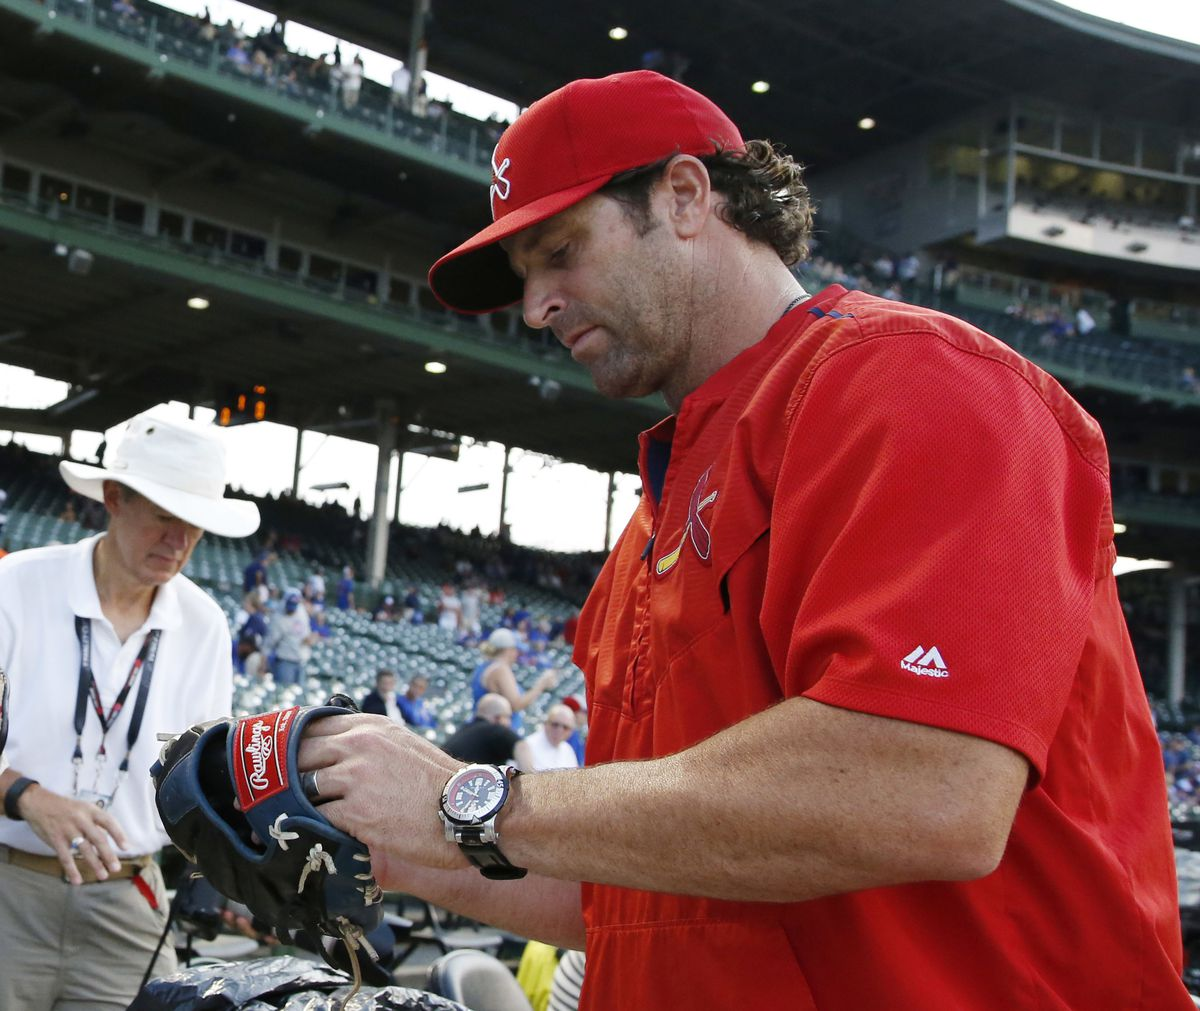 St. Louis Cardinals manager Mike Matheny and his watch. | Nam Y. Huh/AP